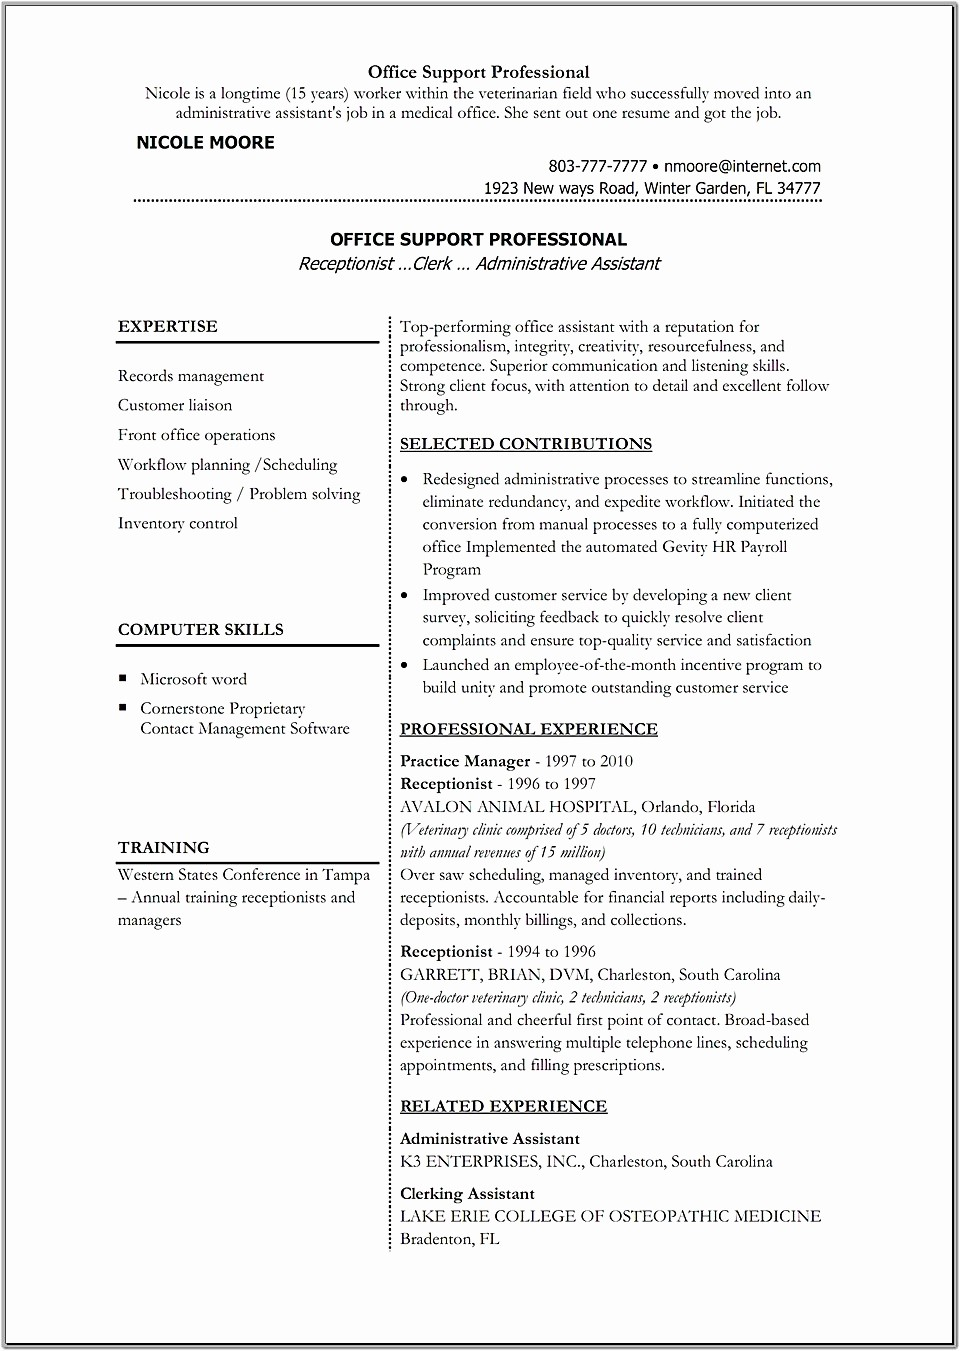 Professional Resume formats Free Download Lovely Resume Template Microsoft Word 2017